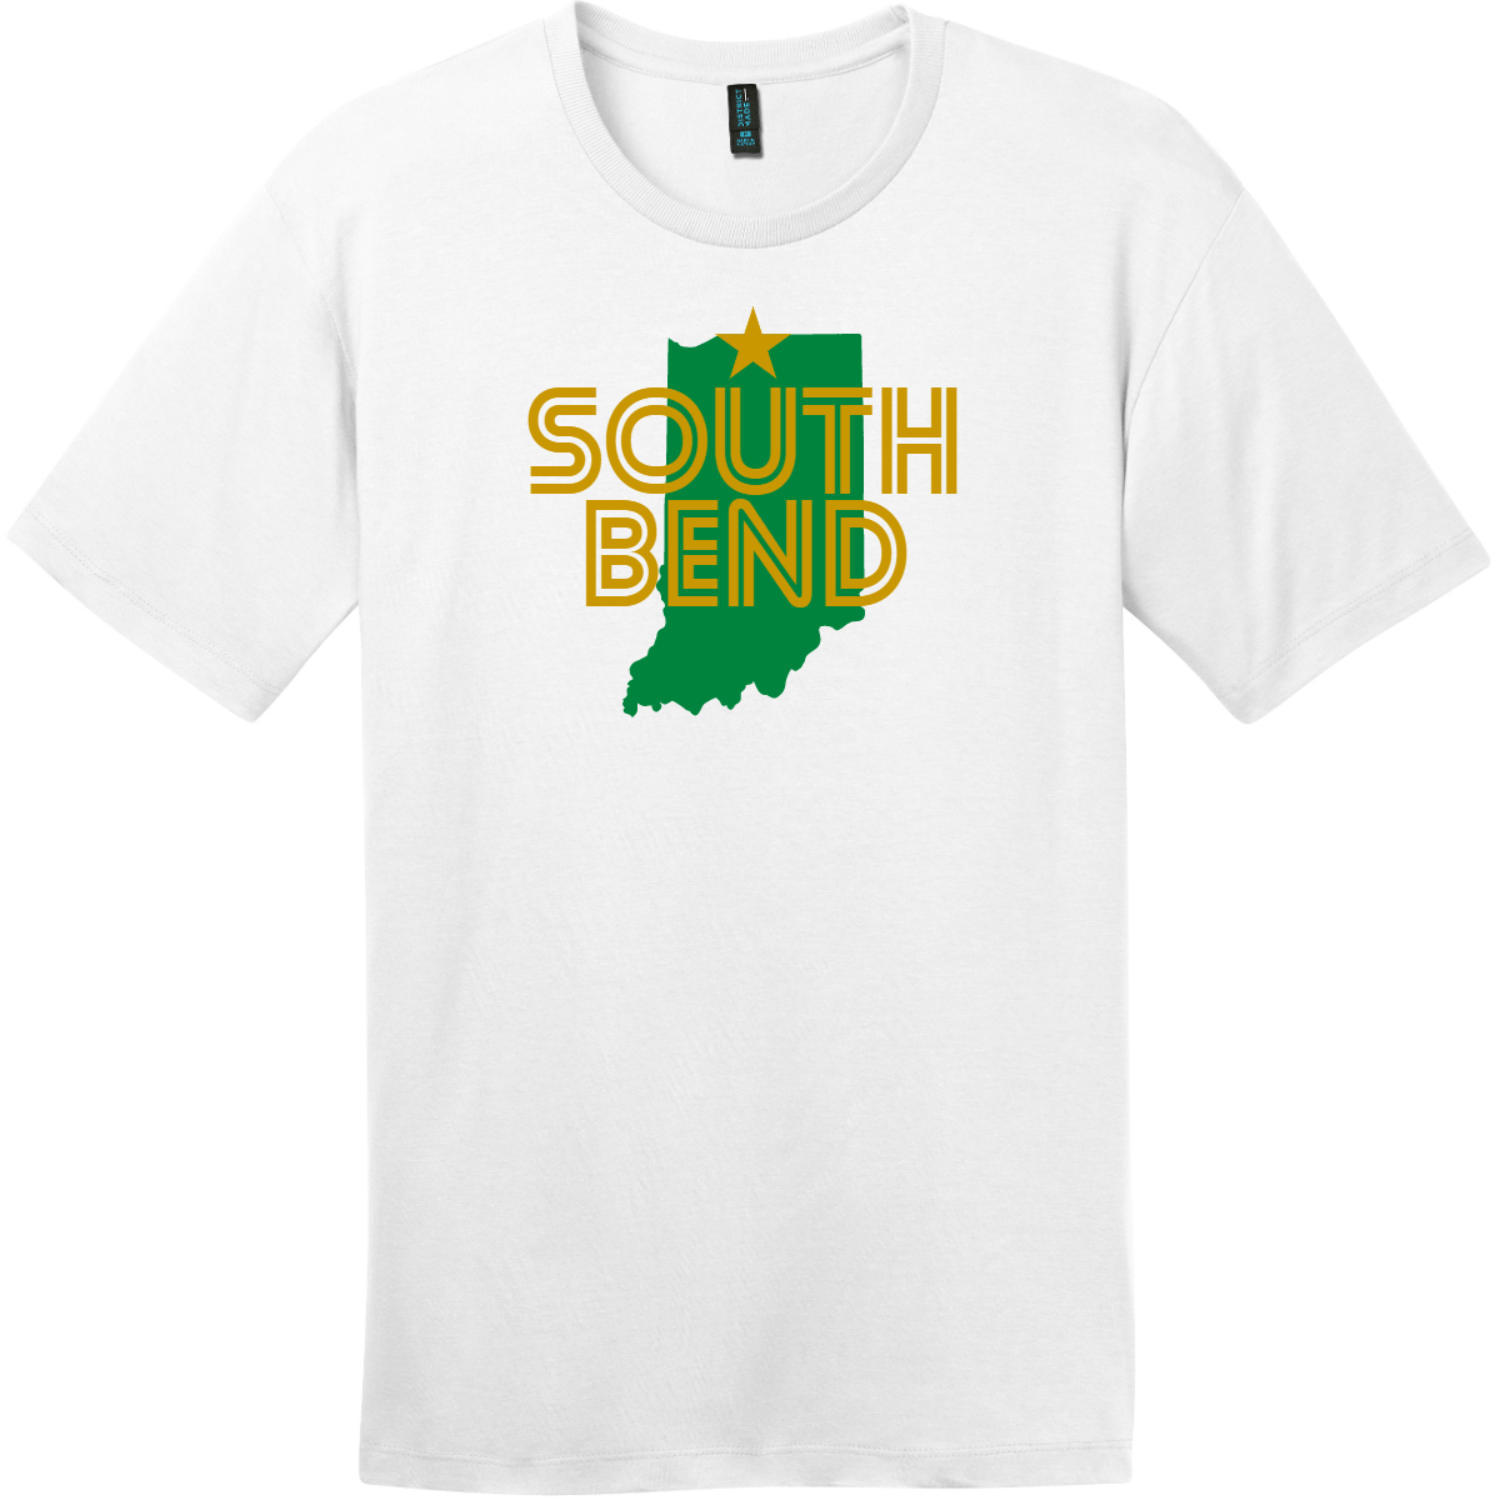 South Bend Indiana T-Shirt Bright White District Perfect Weight Tee DT104